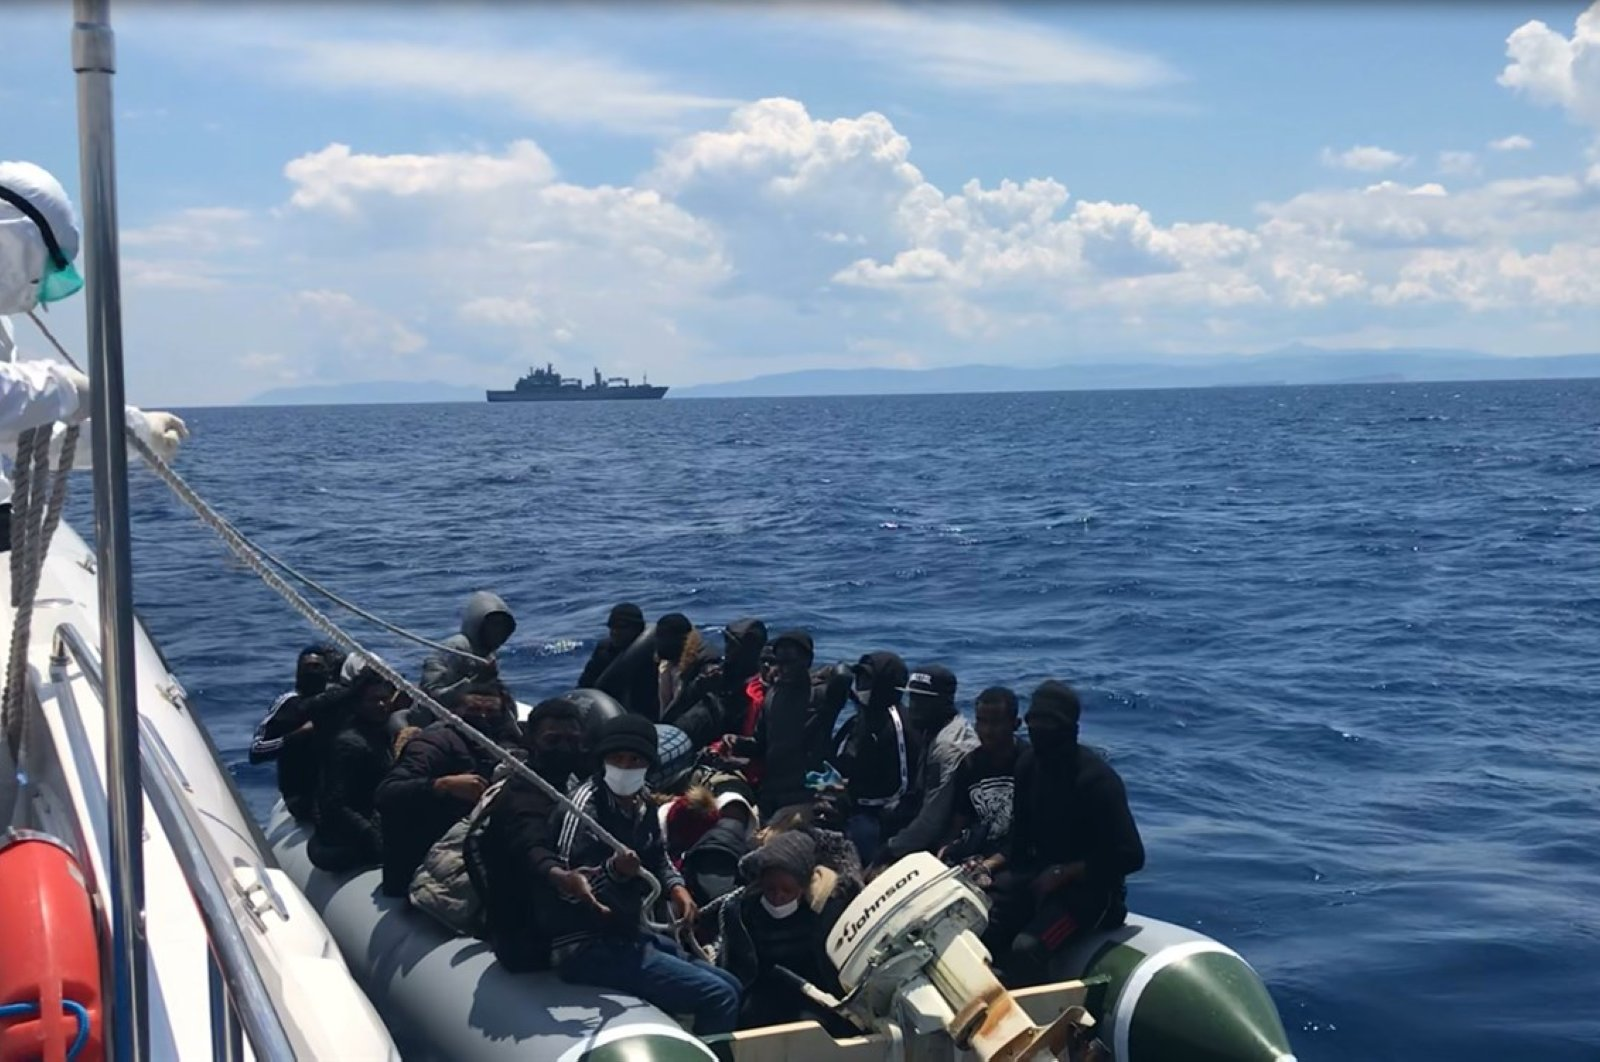 Turkish Coast Guard rescued 85 migrants and refugees who were pushed back by Greek forces into Turkish territorial waters, June 4, 2020. (AA Photo)